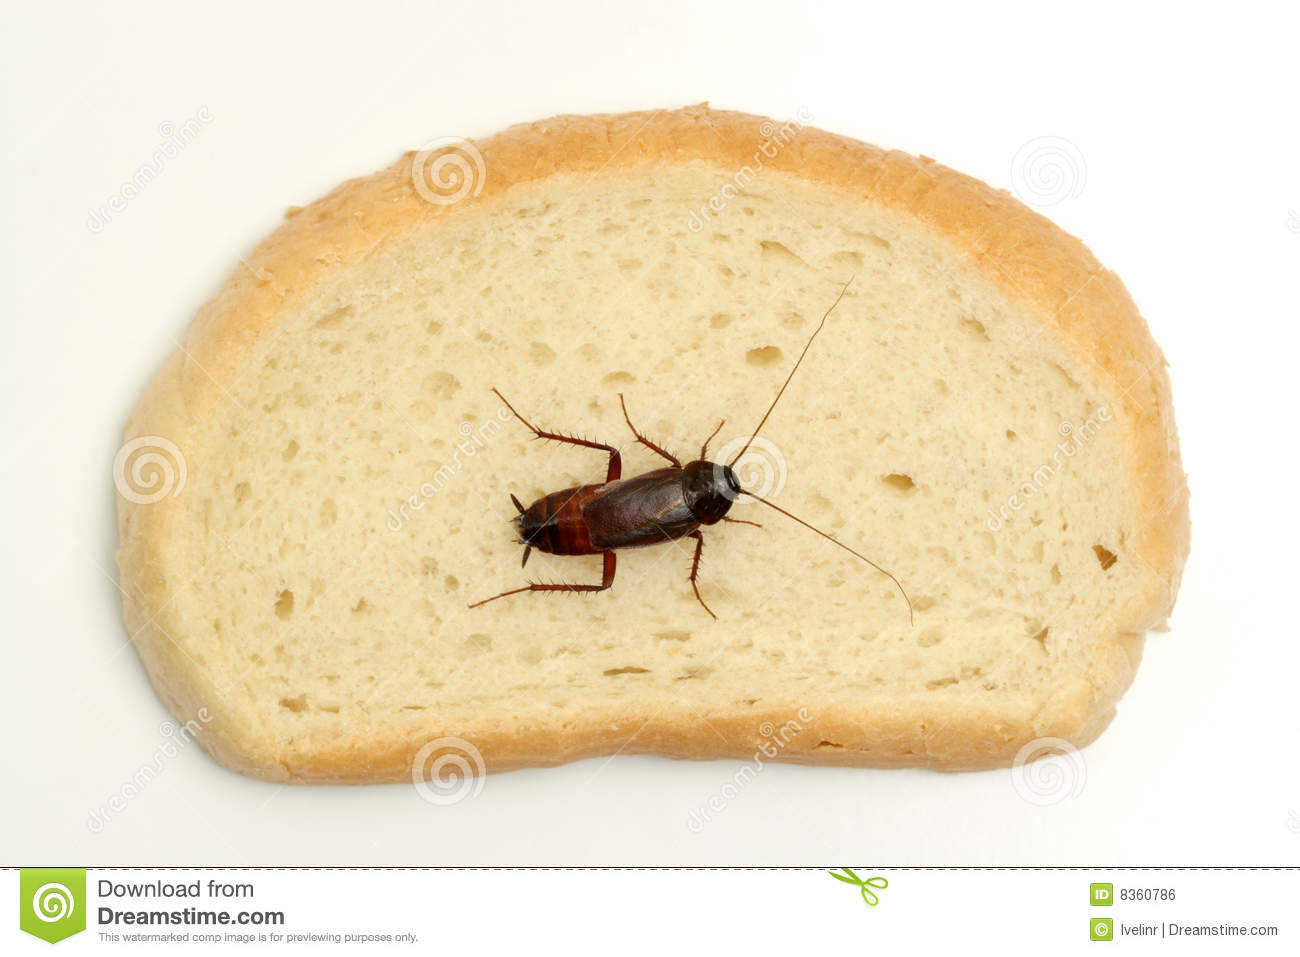 Bild Küchenschabe Cockroach On A Slice Of Bread Stock Photo Image 8360786